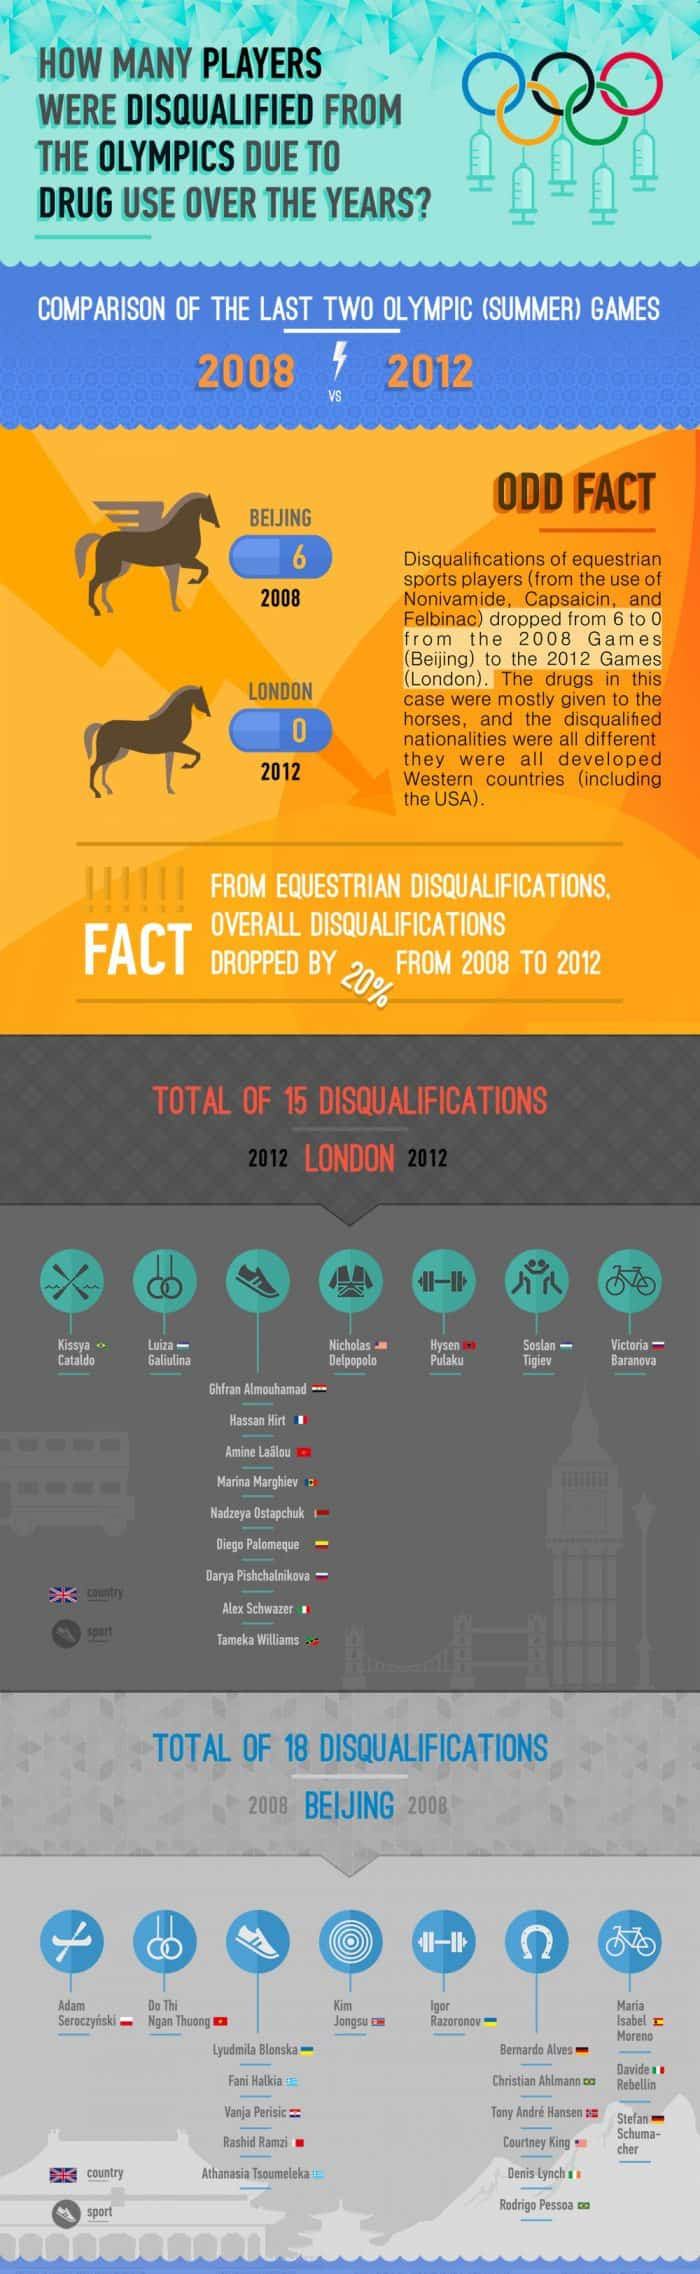 Olympic Players Disqualified For Drug Use Infographic